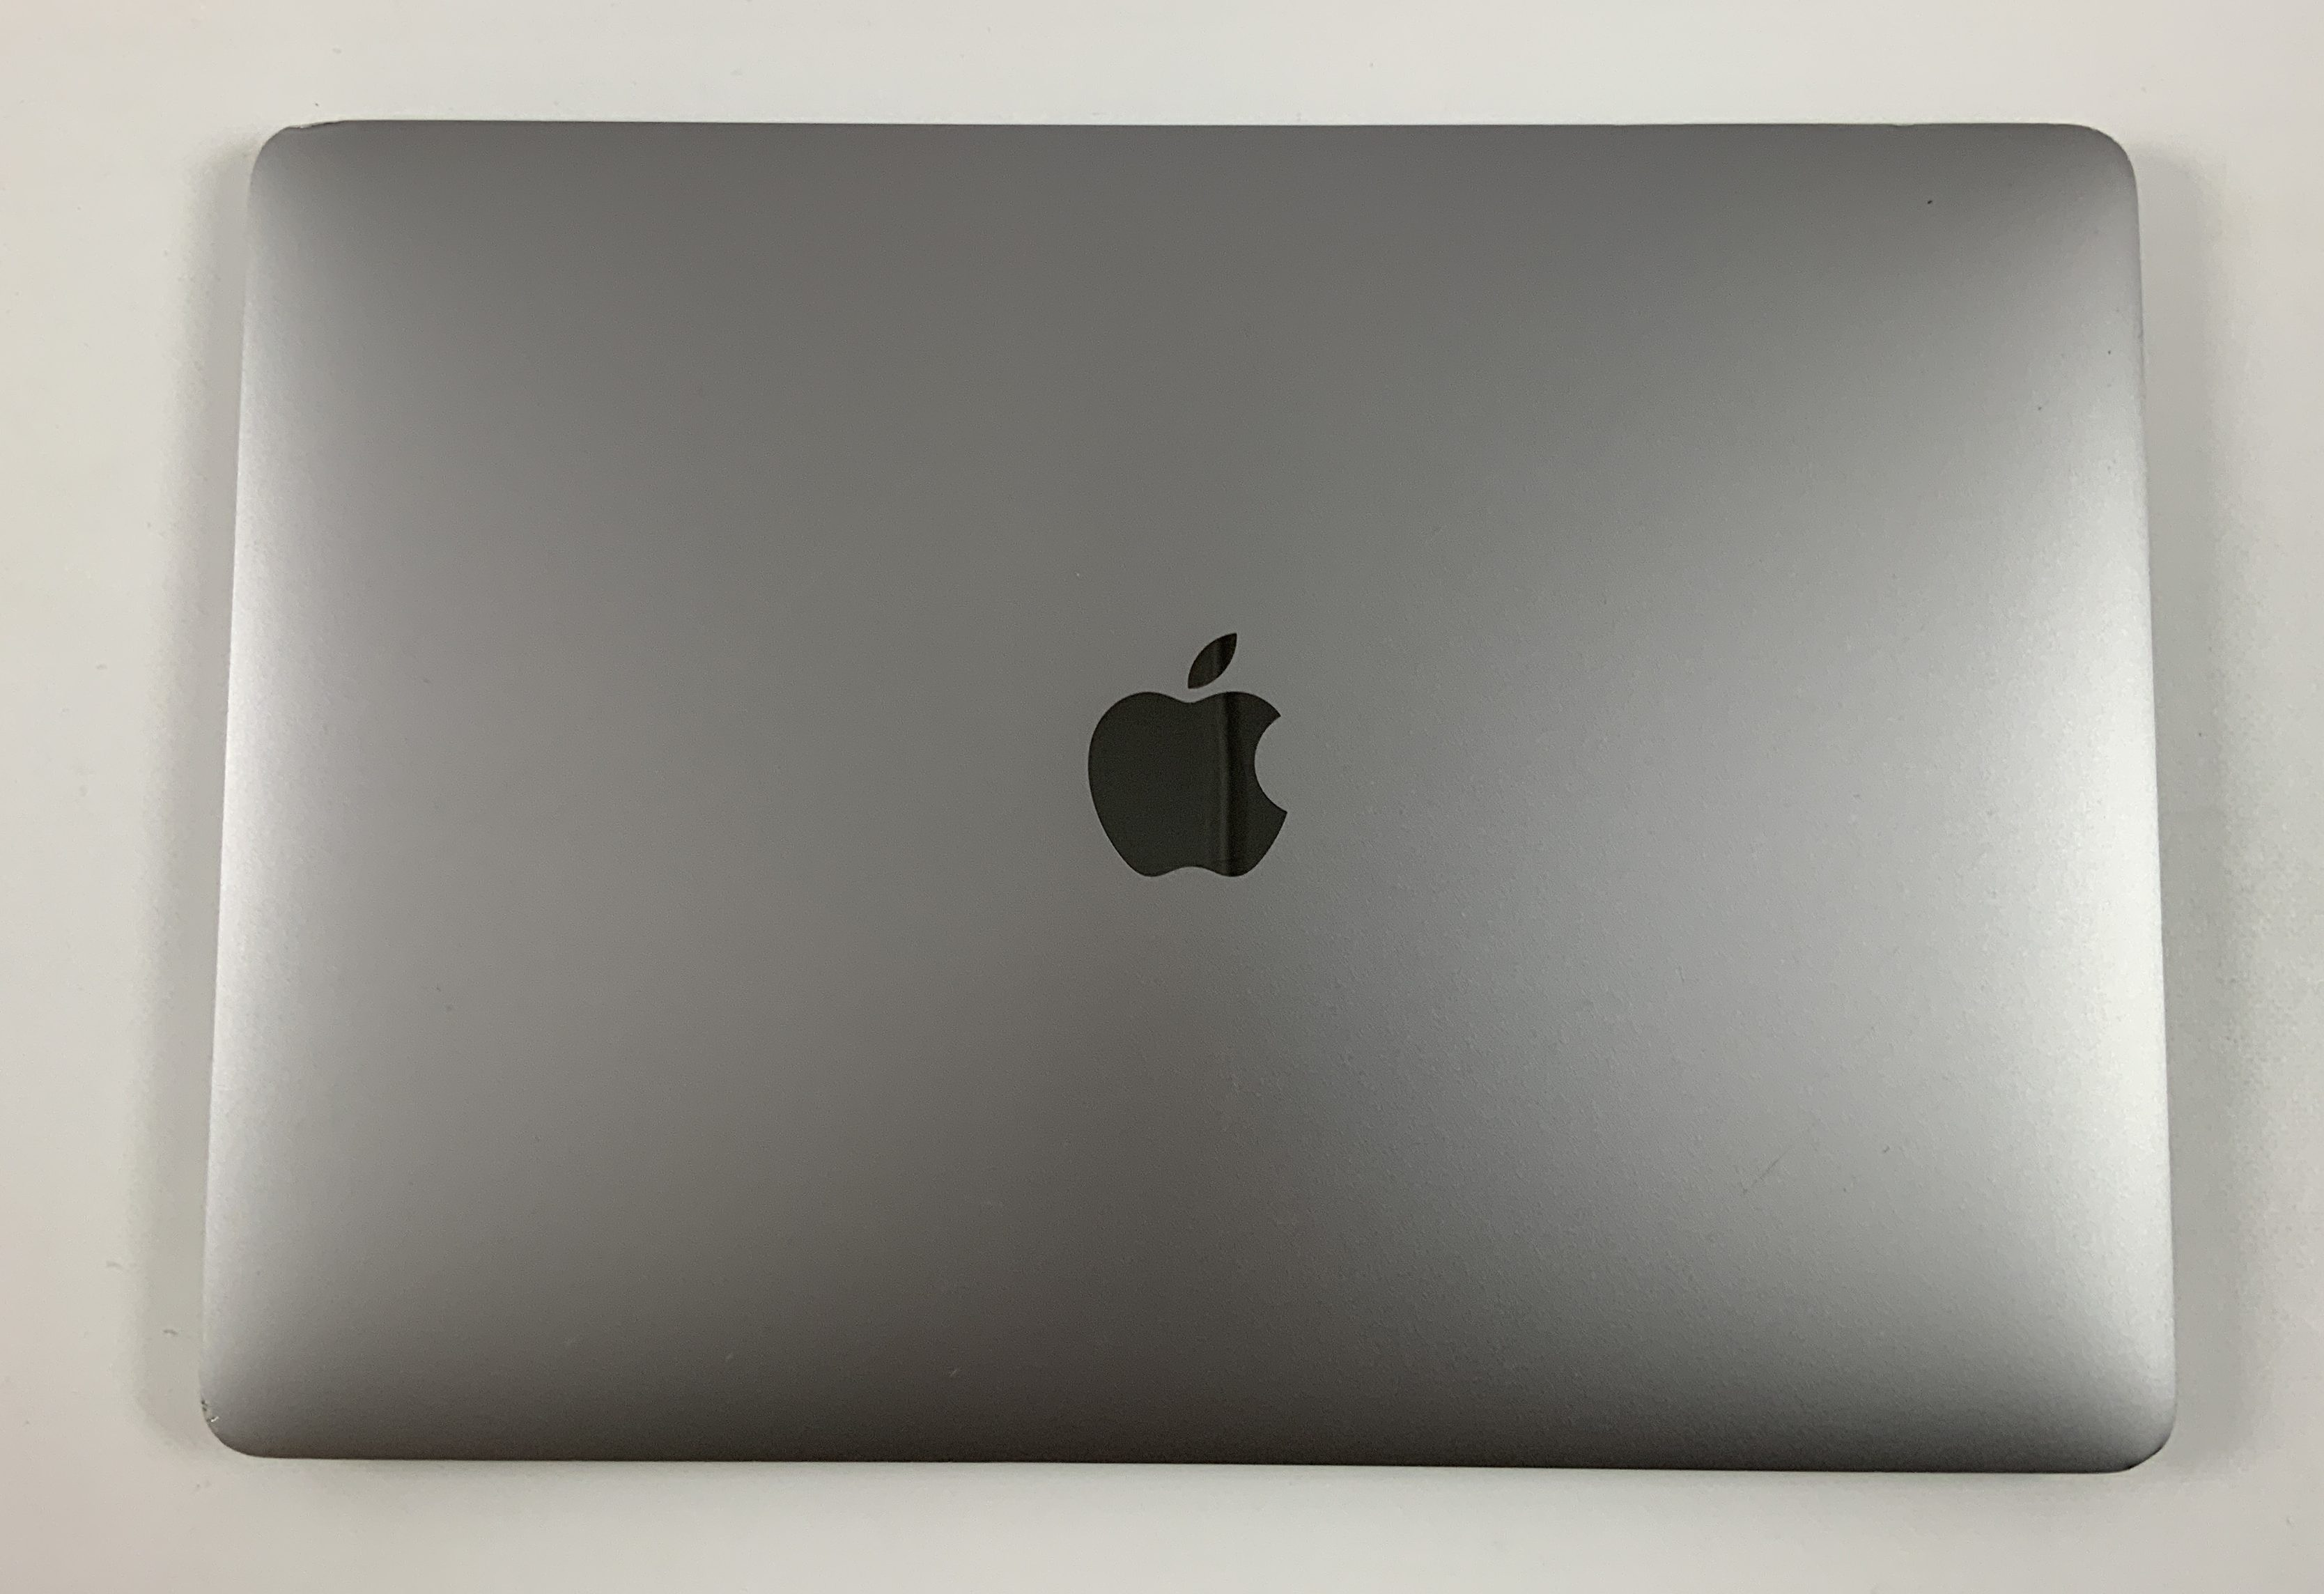 "MacBook Pro 13"" 4TBT Late 2016 (Intel Core i5 2.9 GHz 8 GB RAM 256 GB SSD), Space Gray, Intel Core i5 2.9 GHz, 8 GB RAM, 256 GB SSD, Kuva 2"